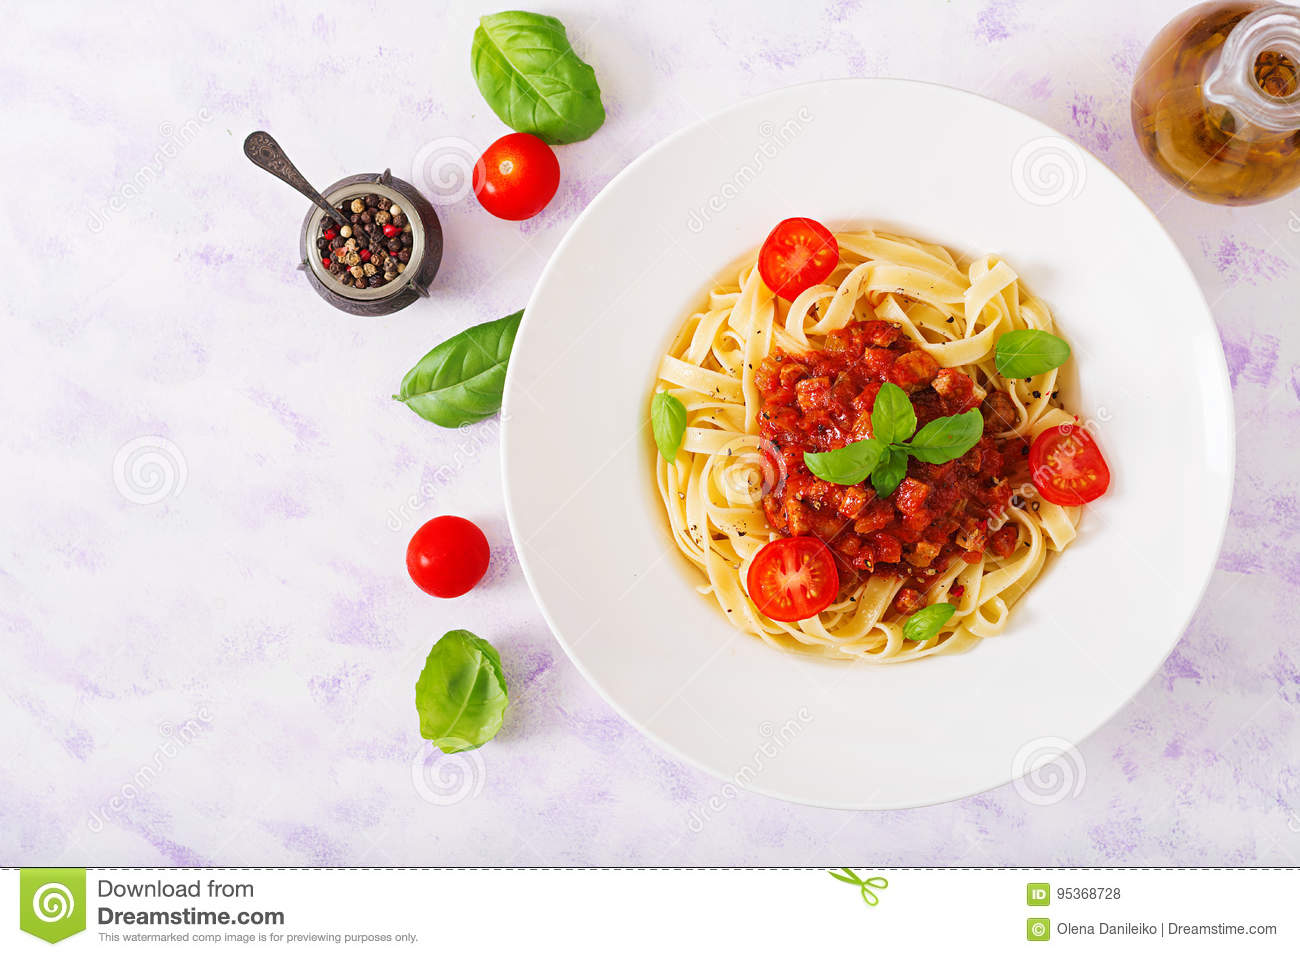 Pasta Fettuccine Bolognese with tomato sauce in white bowl